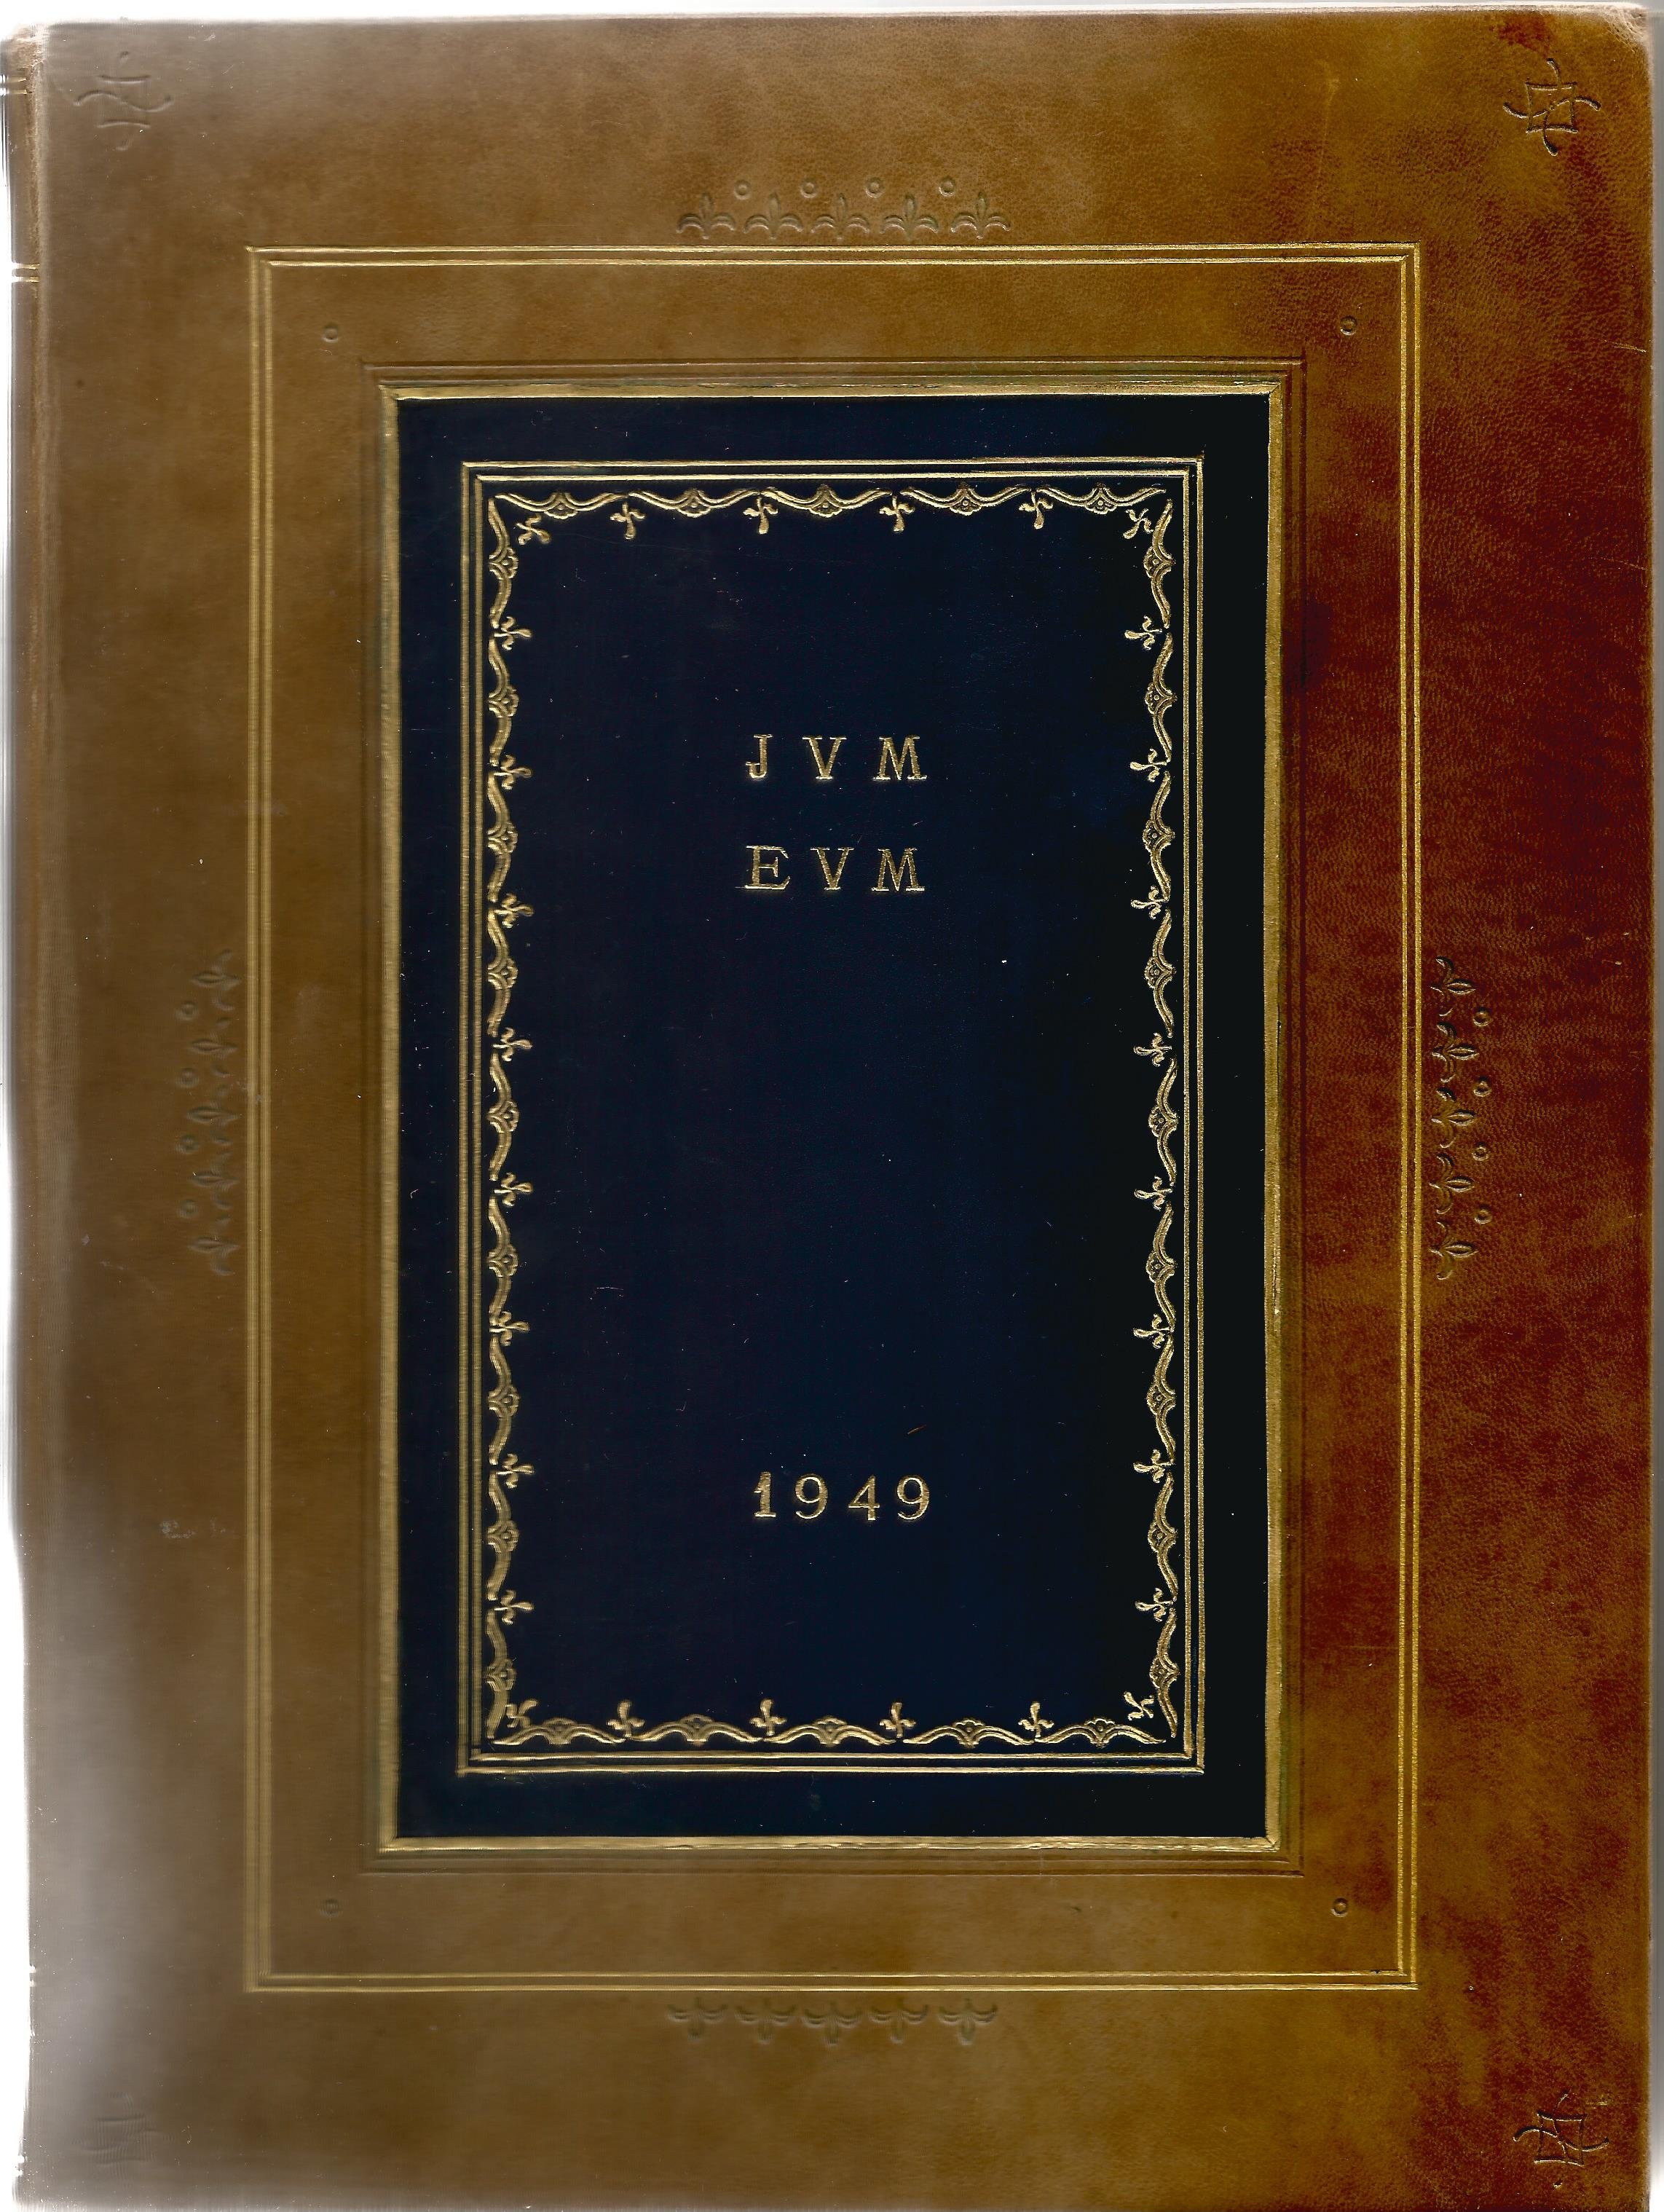 Hardback Book Expensively made visitors Book with slipcase JVM, EVM & 1949 in Gold Lettering on